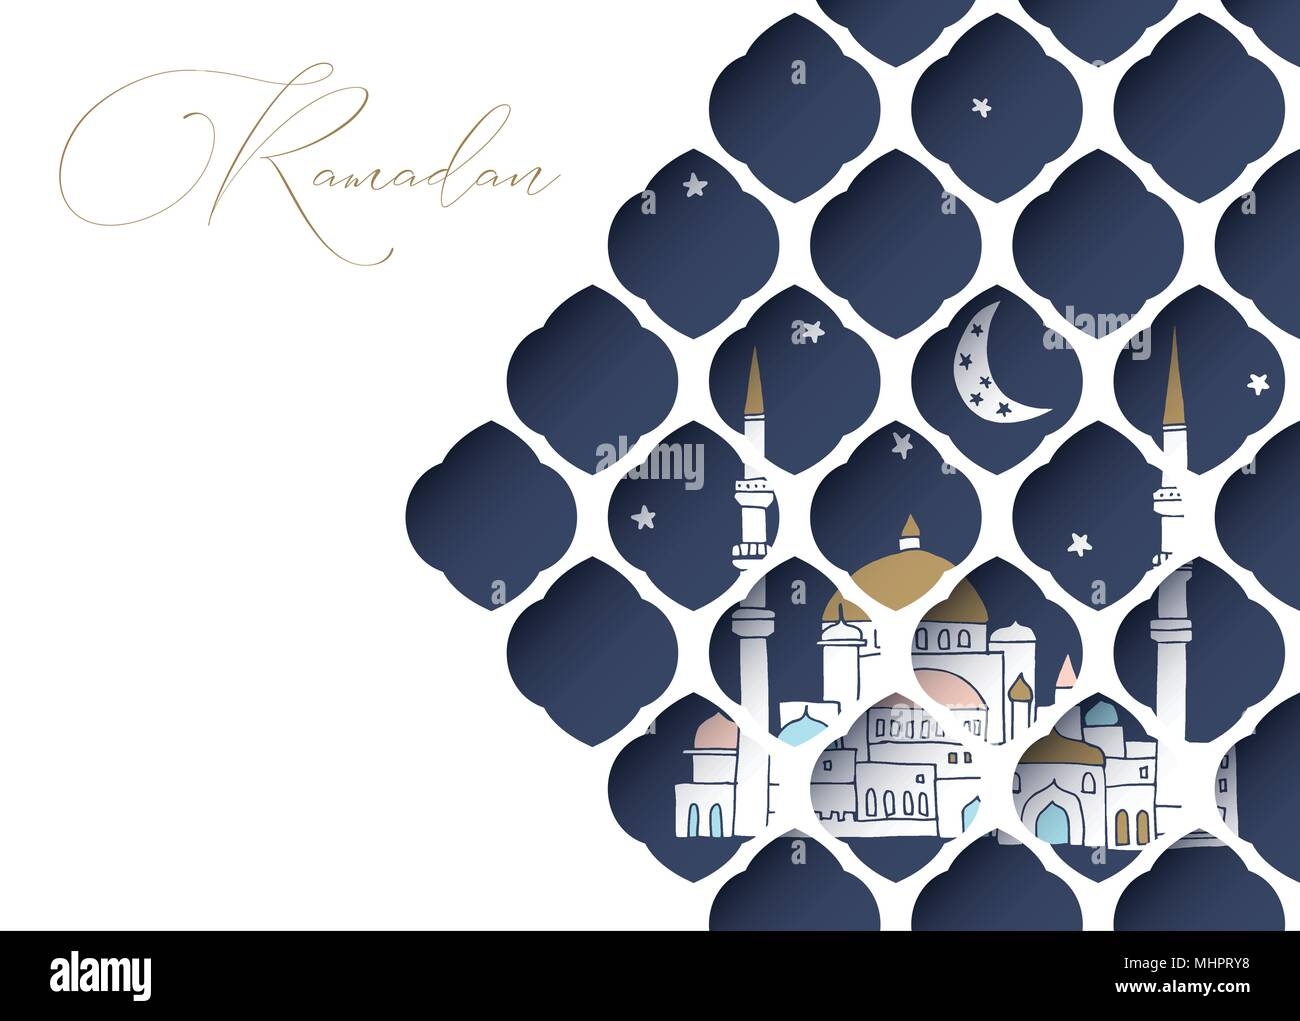 Greeting card invitation for muslim holiday ramadan kareem hand greeting card invitation for muslim holiday ramadan kareem hand drawn mosque with moon and stars view through white cut paper oriental arab pattern m4hsunfo